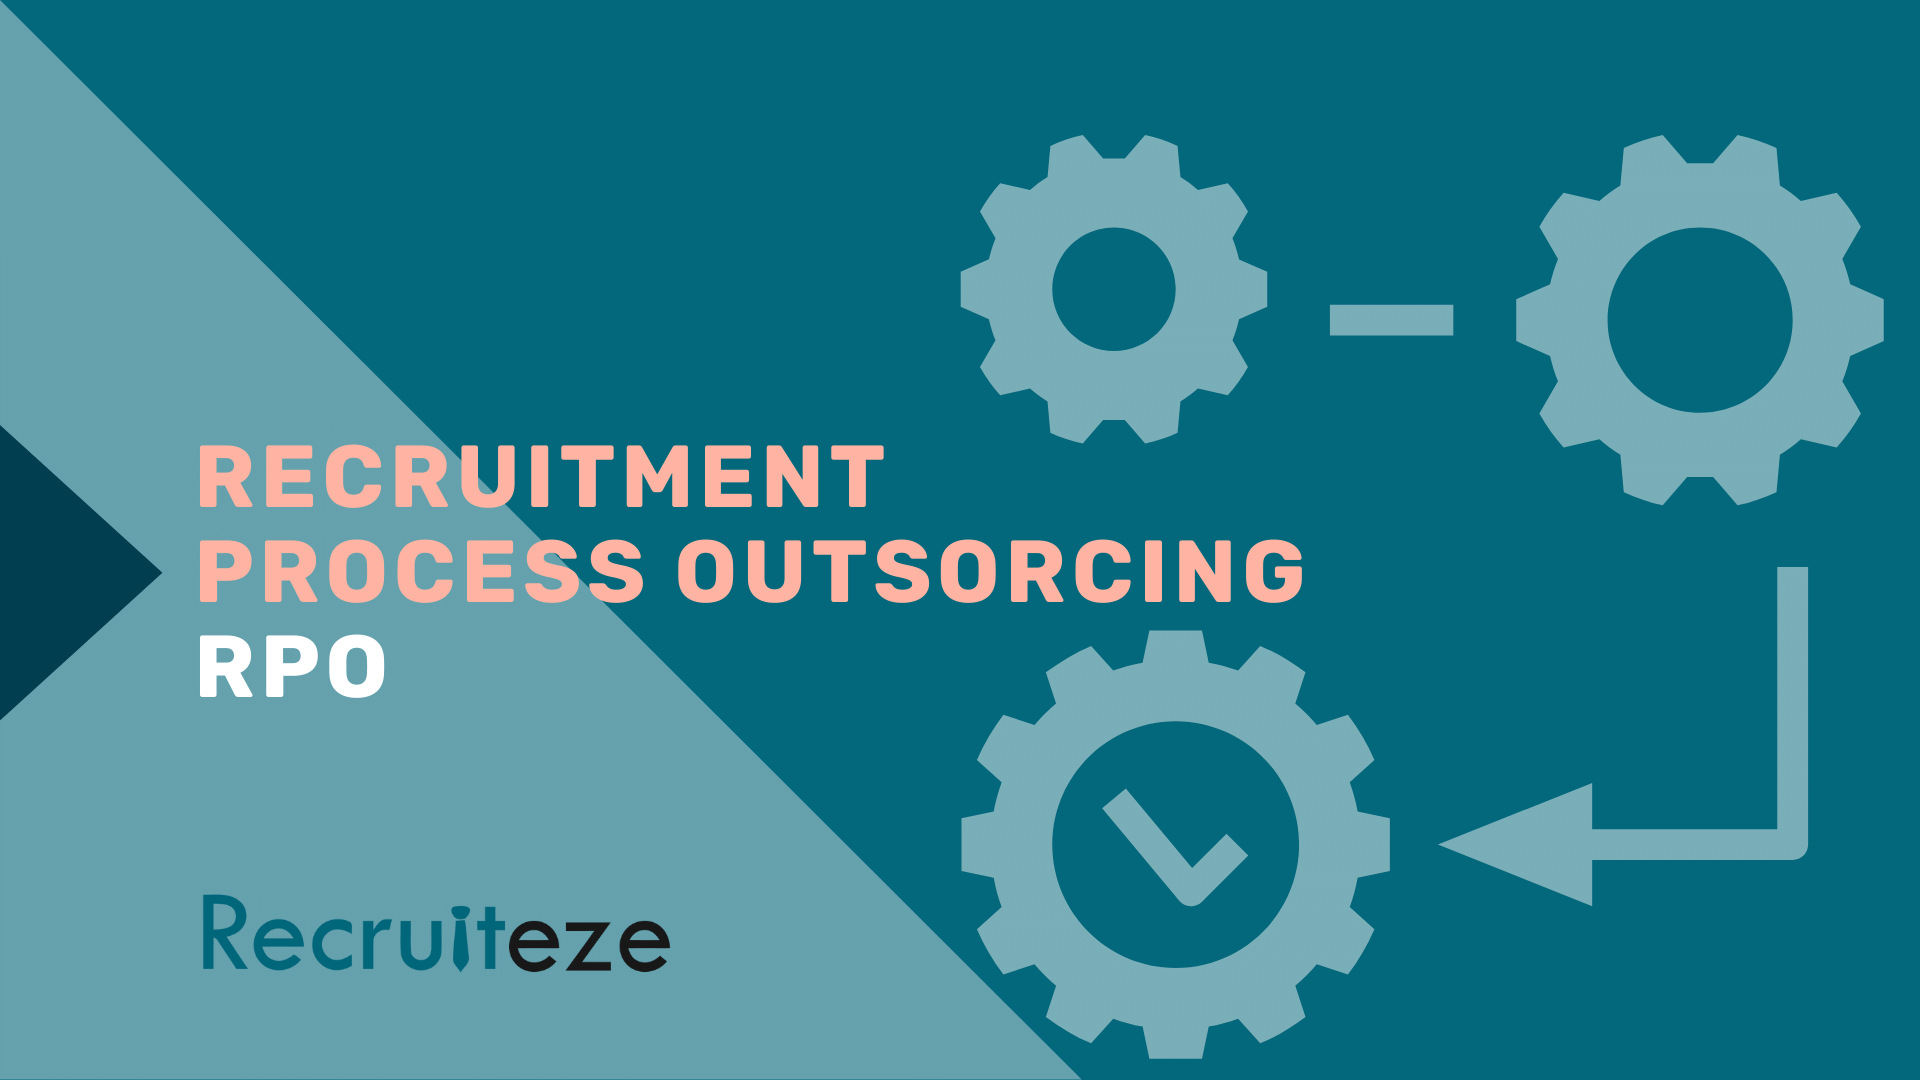 Recruitment Process Outsourcing (RPO) - Benefits, Pros & Cons